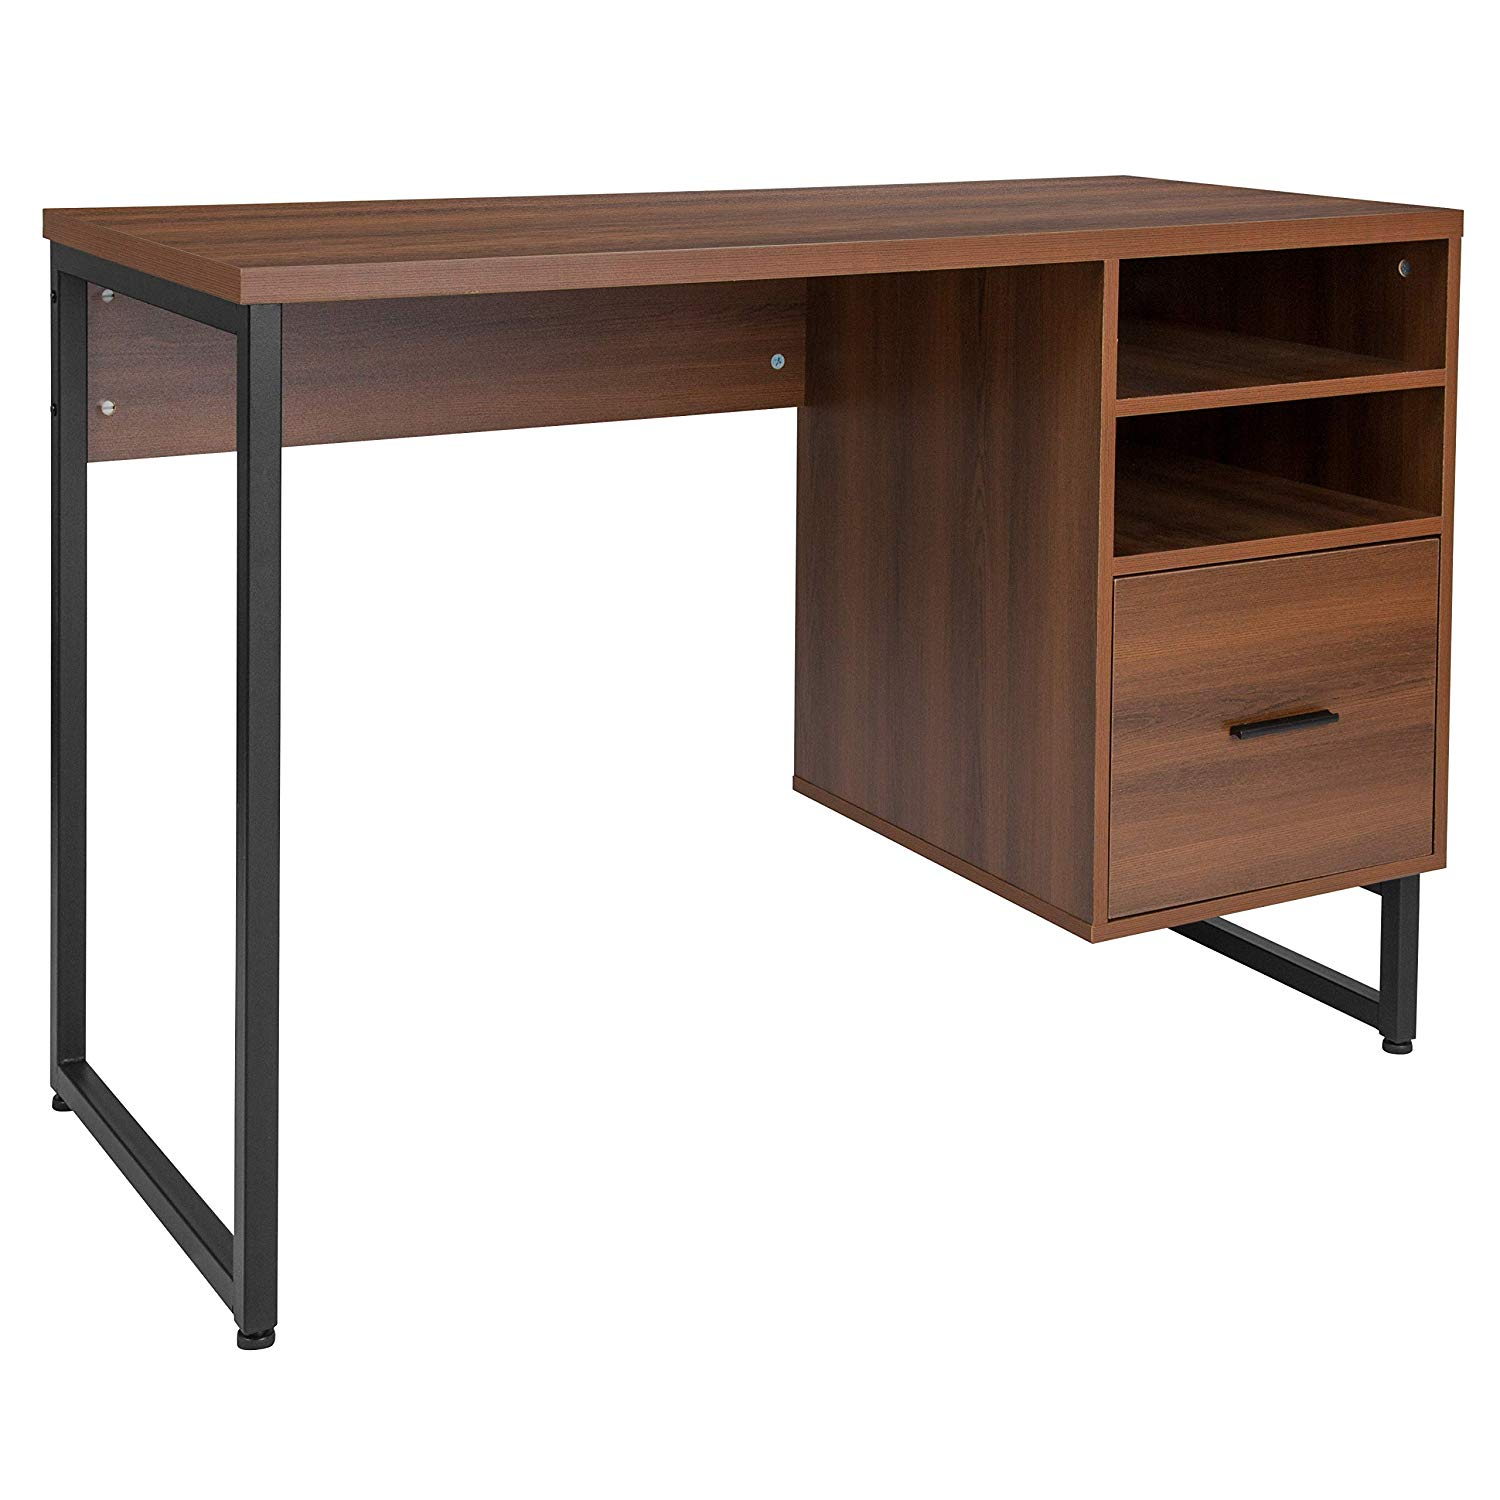 - Wooden Gaming Computer Table Desk Simple Computer Desk With Two